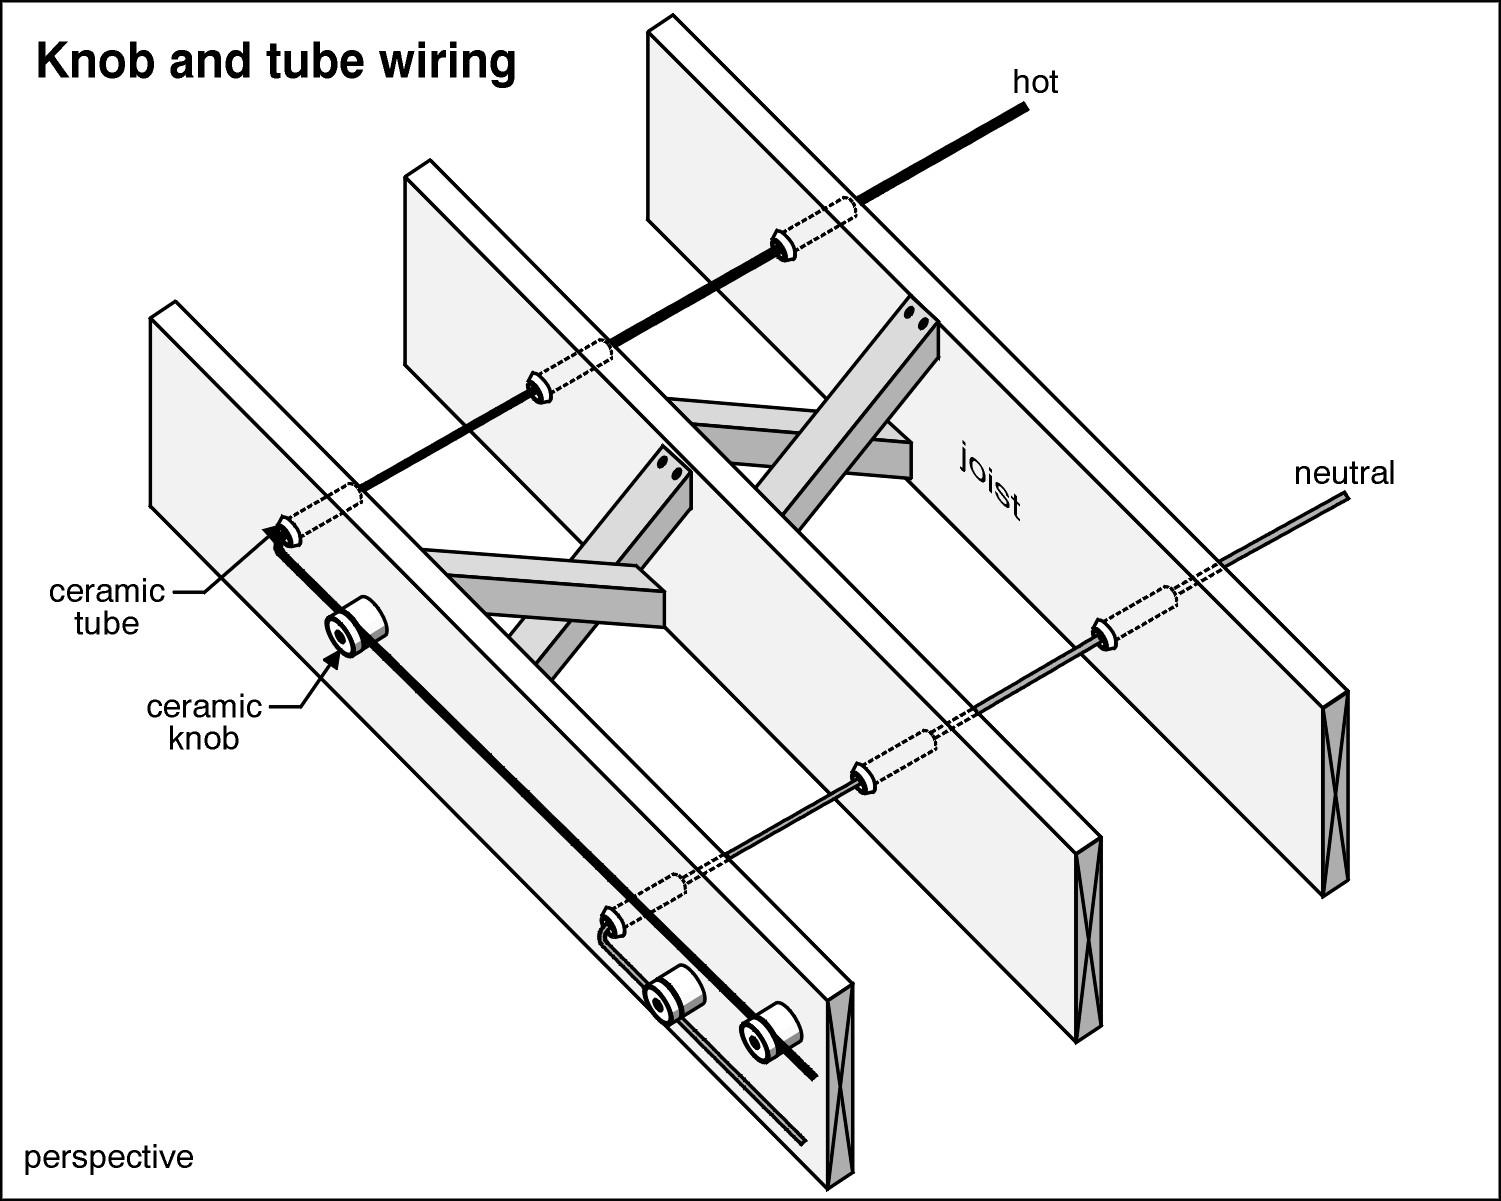 Knob And Tube Wiring Understanding The Home Inspection